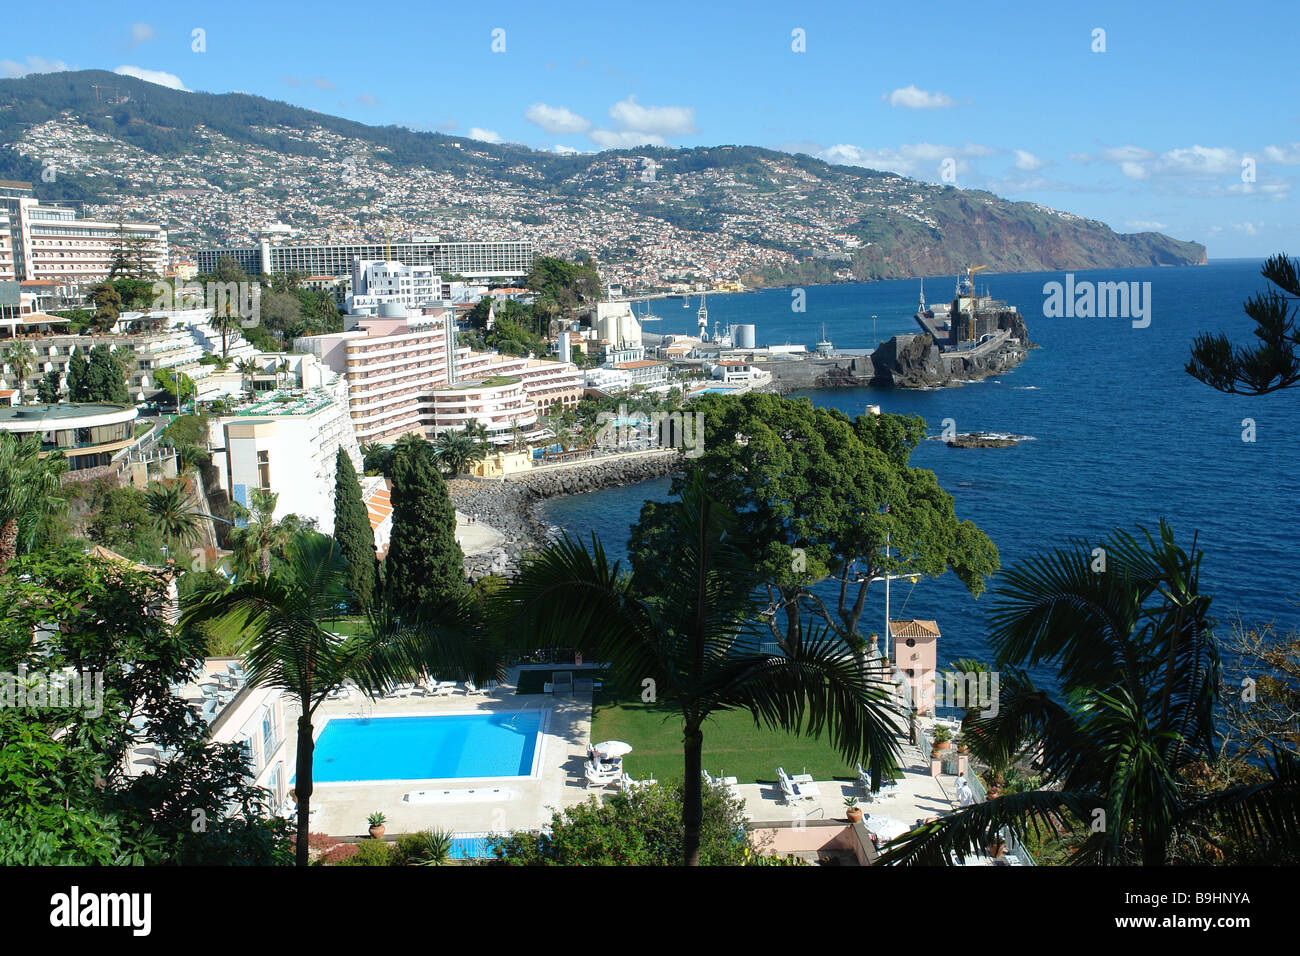 portugal island madeira funchal reid 39 s palace hotel stock photo royalty free image 23132686. Black Bedroom Furniture Sets. Home Design Ideas